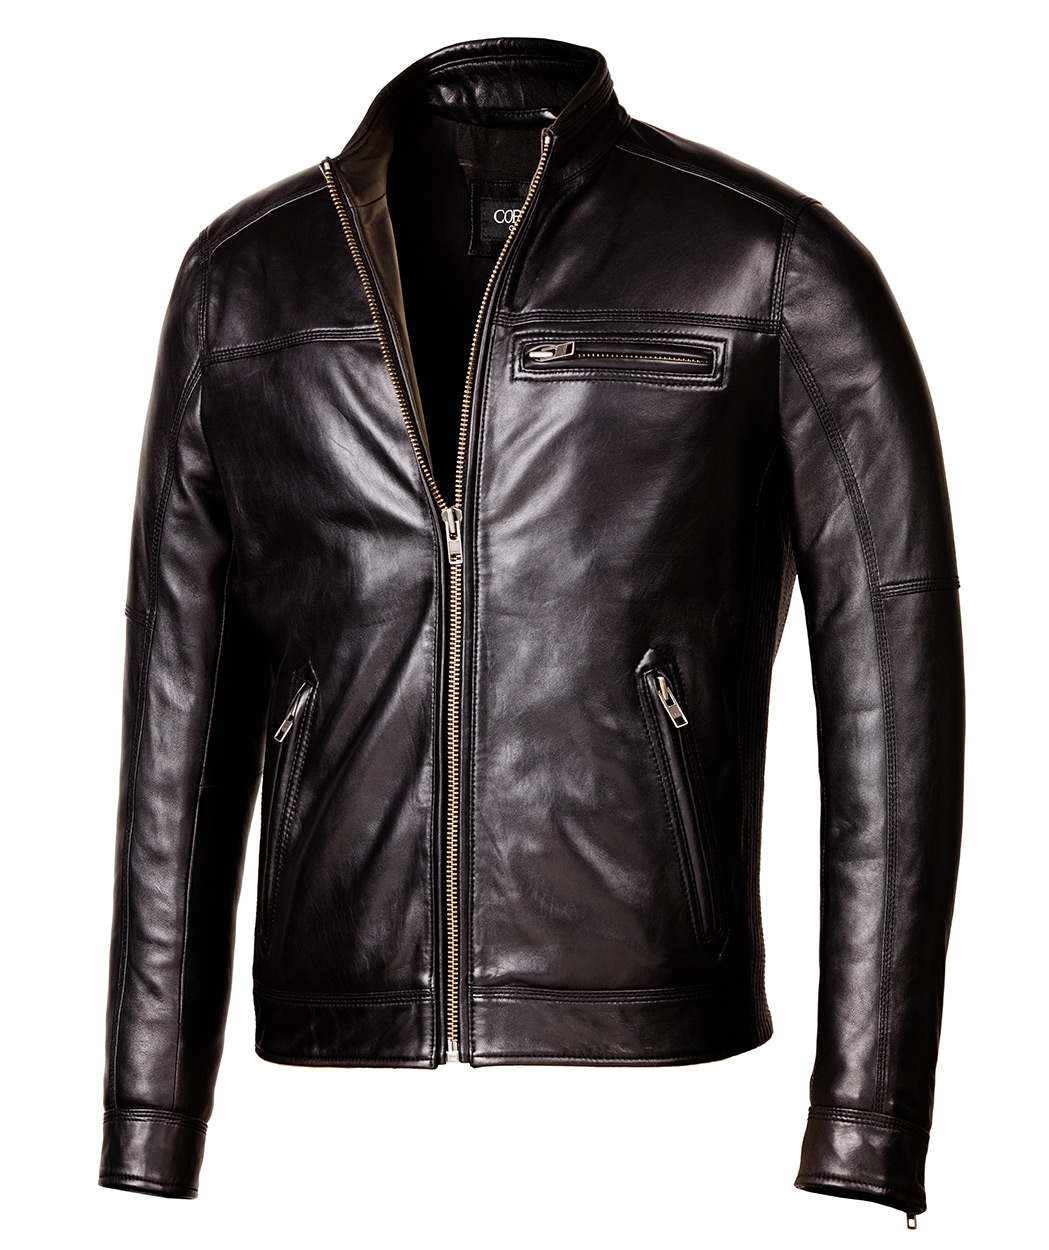 Leather Jacket: Designer Biker Black Leather Jacket